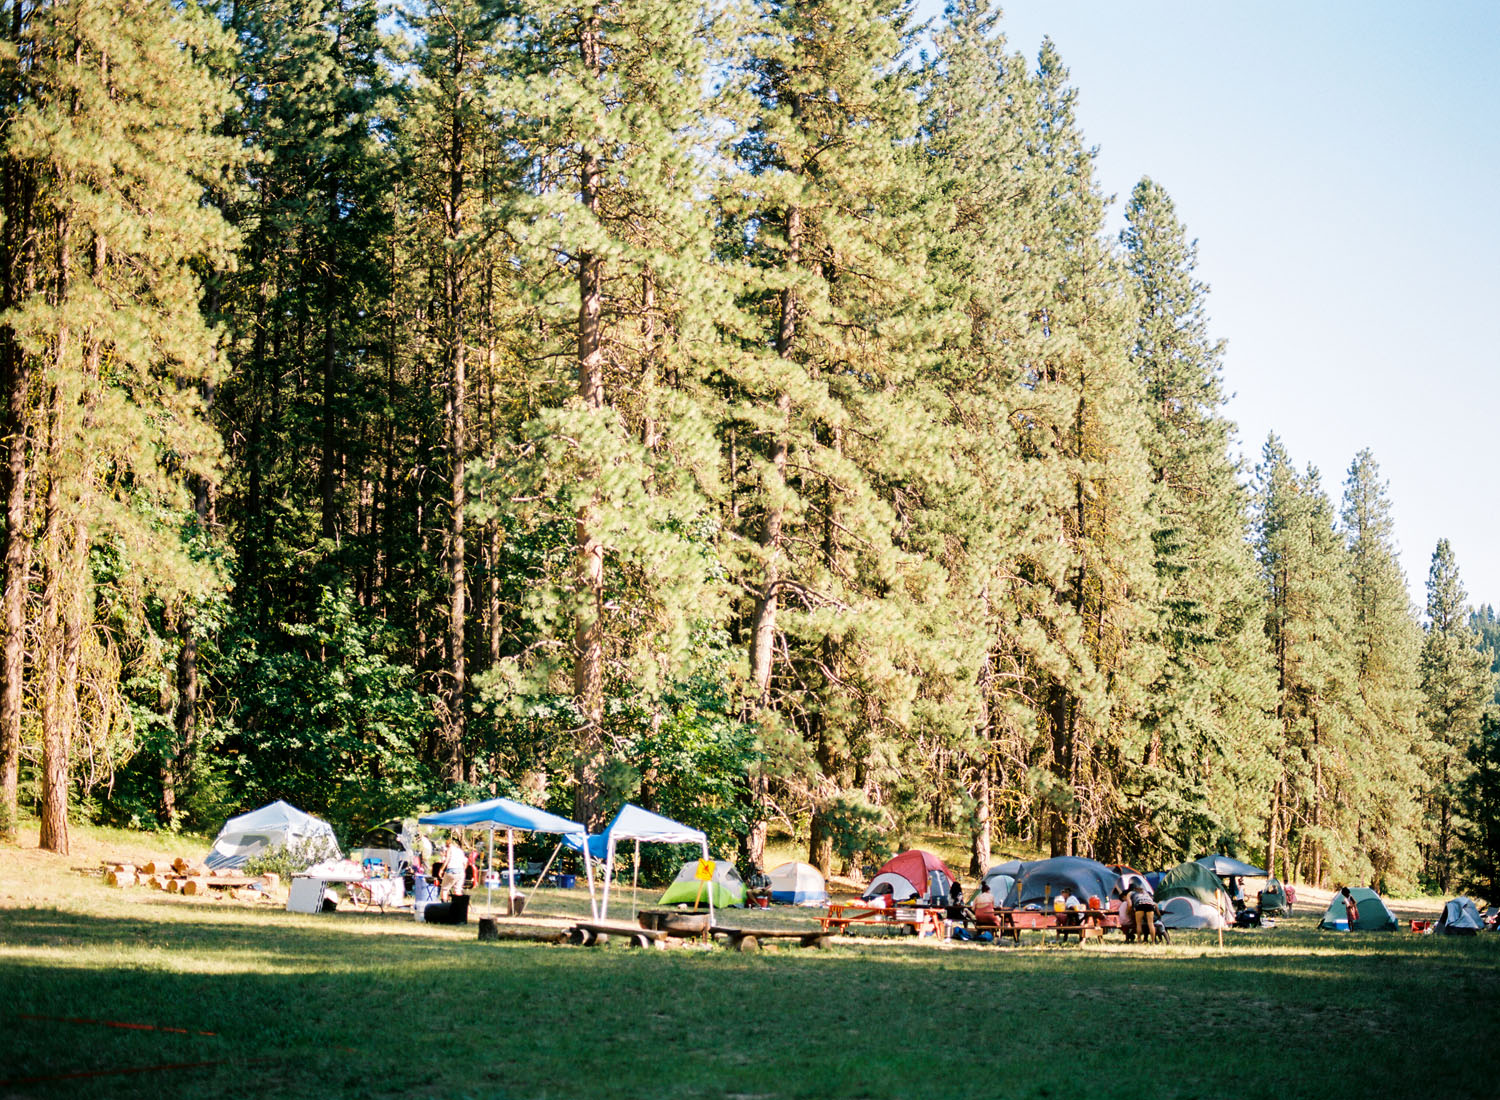 leavenworth summer campground wedding photography.jpg